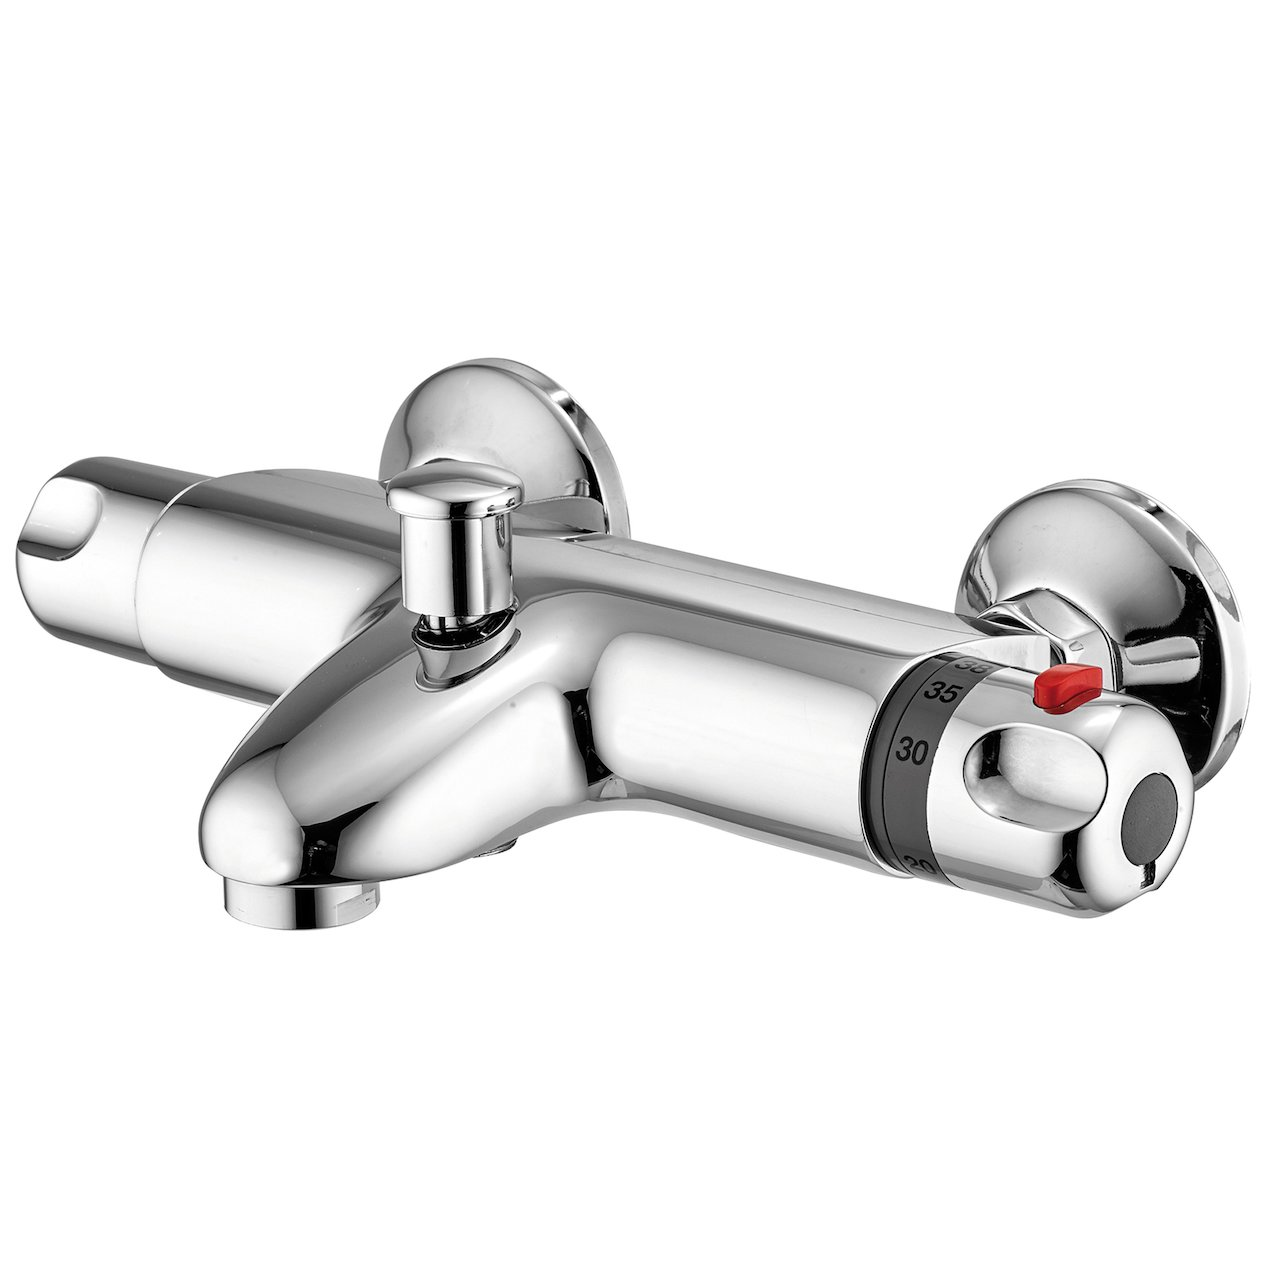 Thermostatic bath mixer